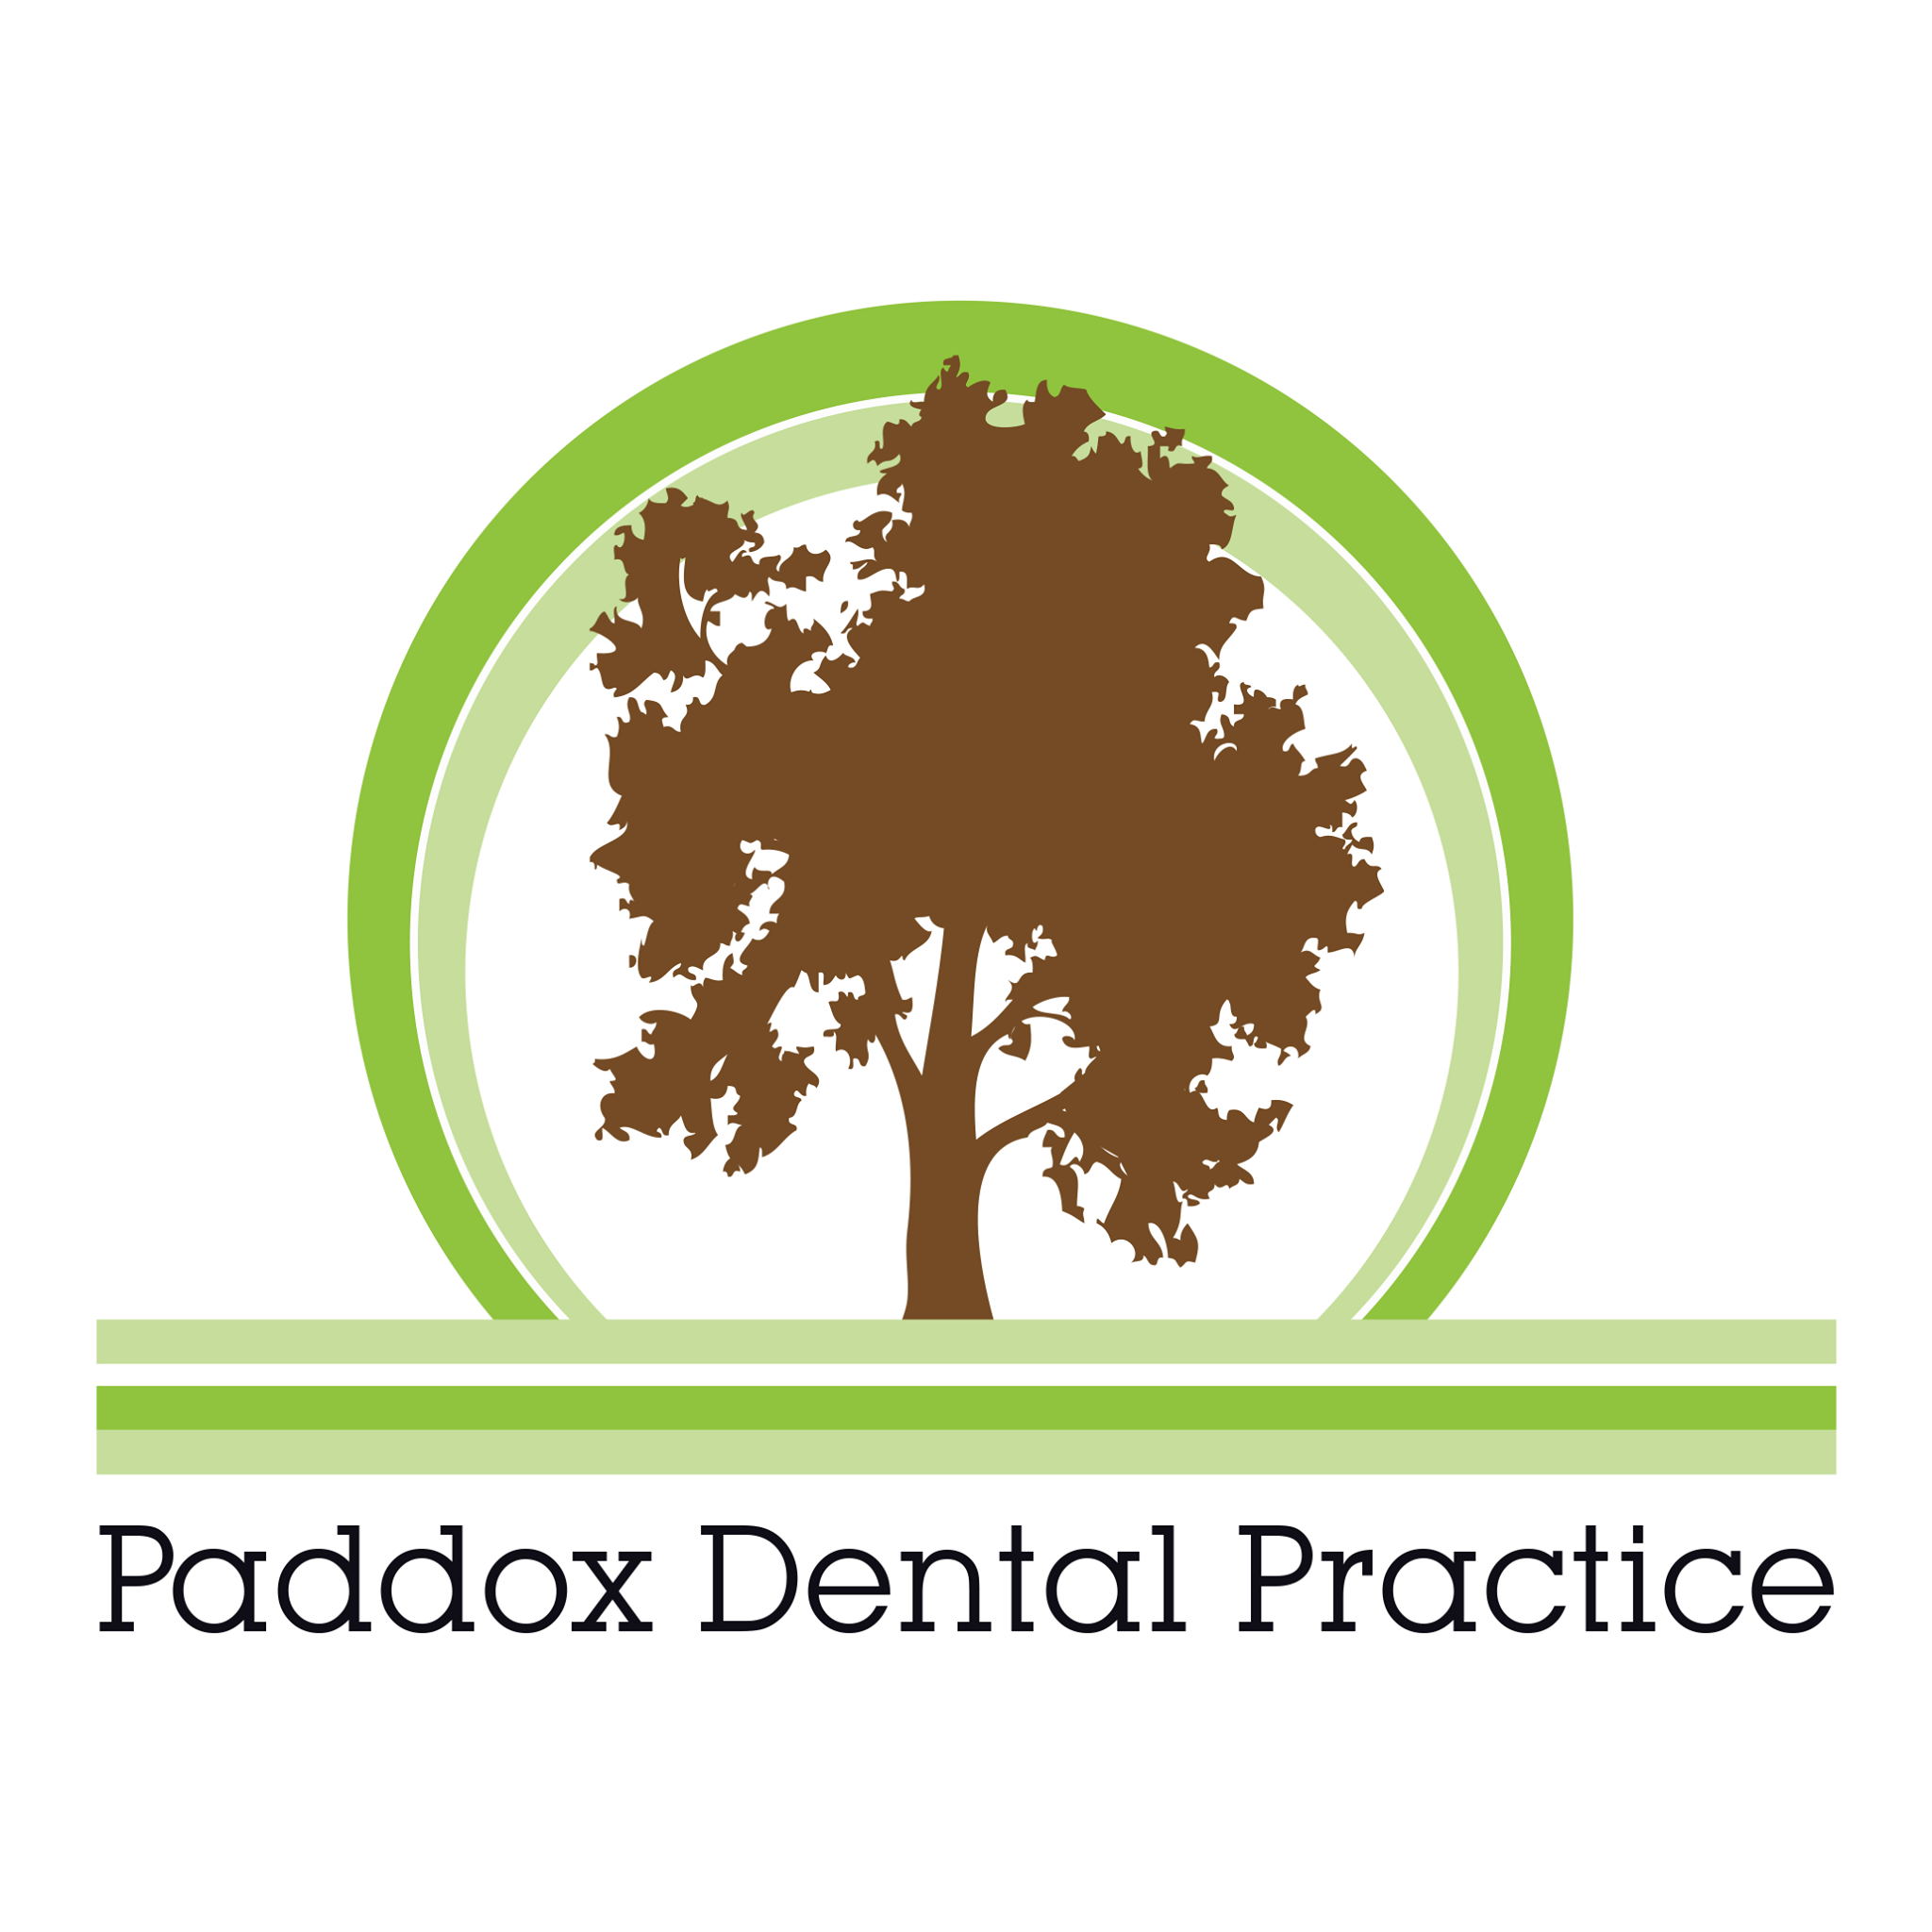 Mrs Mandy Randle    Dental Hygienist   CEB Diploma Dent Hygiene  Country of issue: United Kingdom  GDC registration number: 4312   Mandy qualified at Birmingham university in 1992. She joined Paddox Dental Practice in 1996. Mandy is very patient and understanding. She has a very gentle manner.